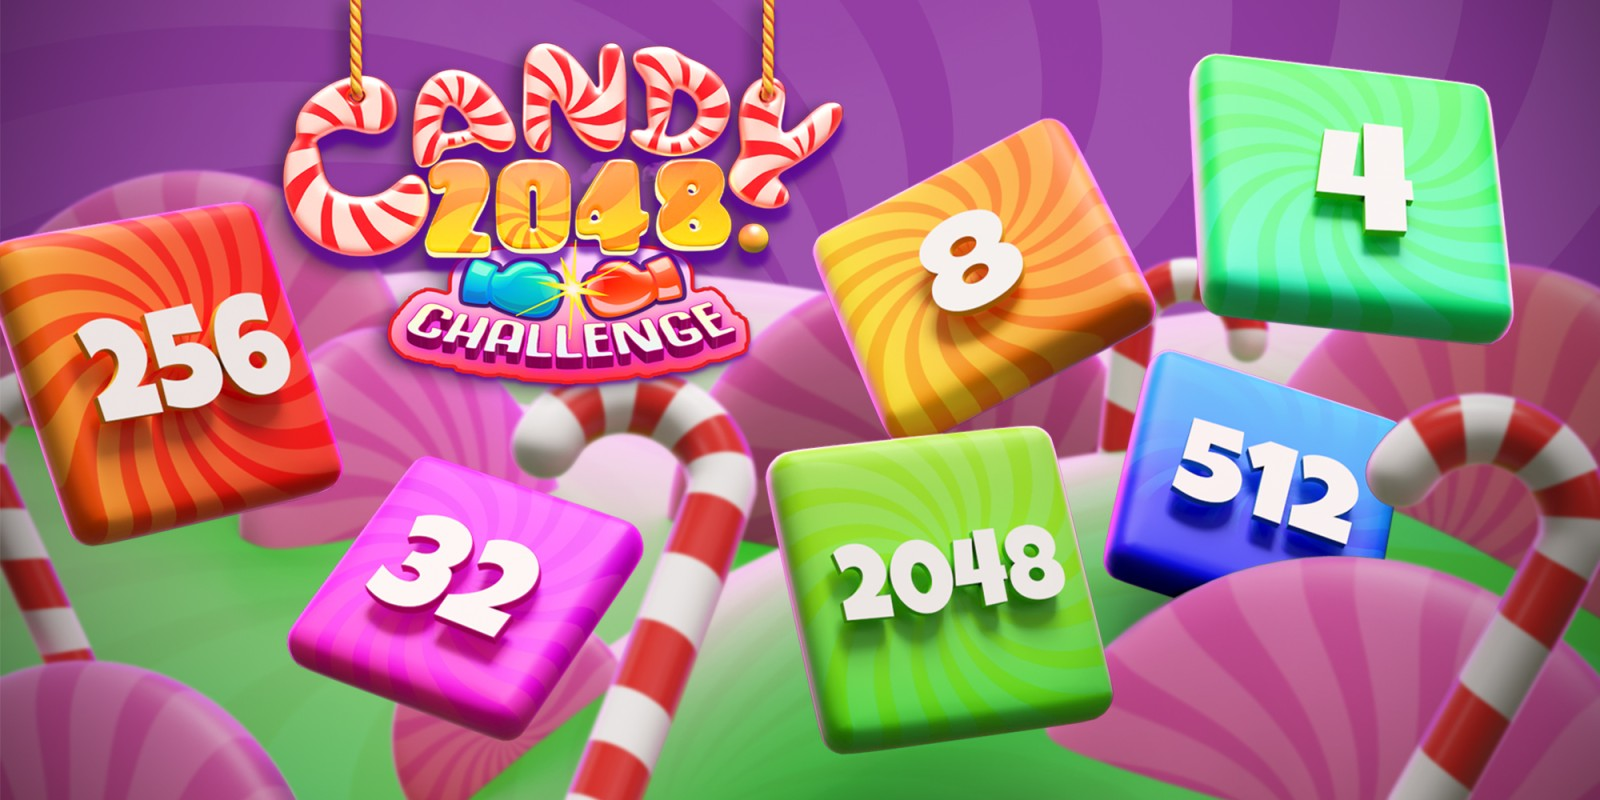 Candy 2048 Challenge